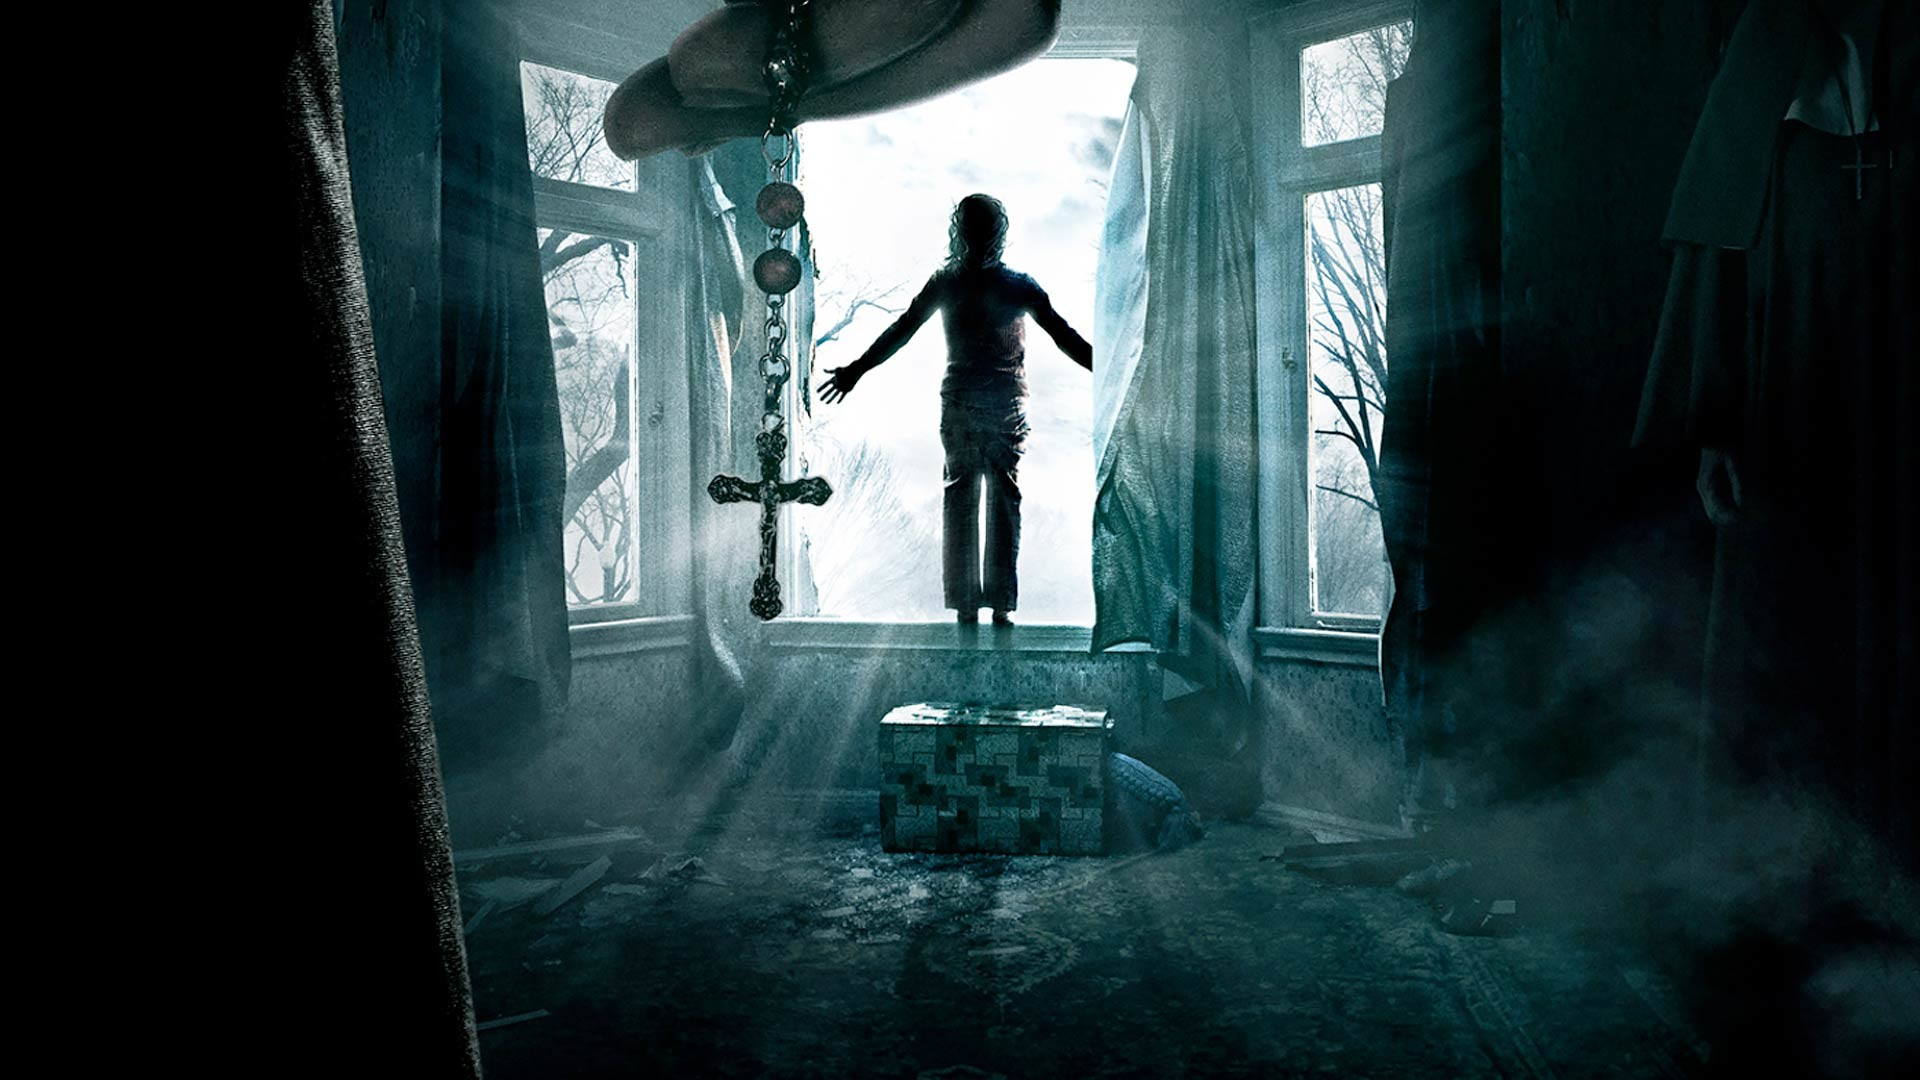 Horror Movie Wallpapers Wallpapertag: HD Horror Wallpapers 1080p (61+ Images